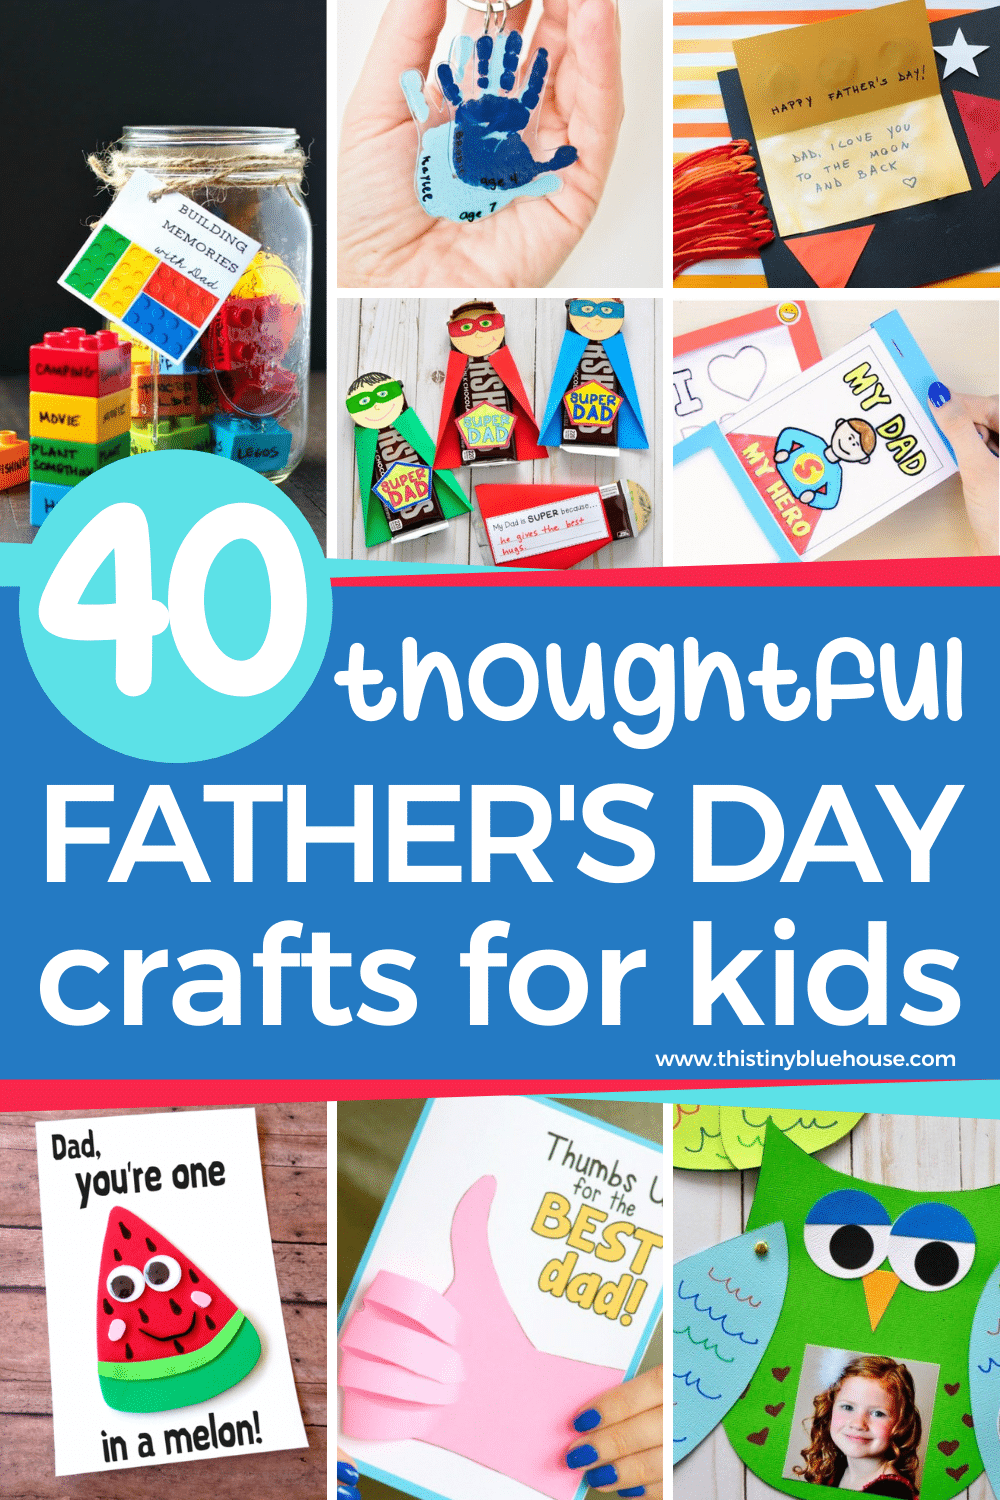 Here are 40+ cute Father's Day Crafts that are the perfect way to show dad how loved and appreciated he is this Father's day.